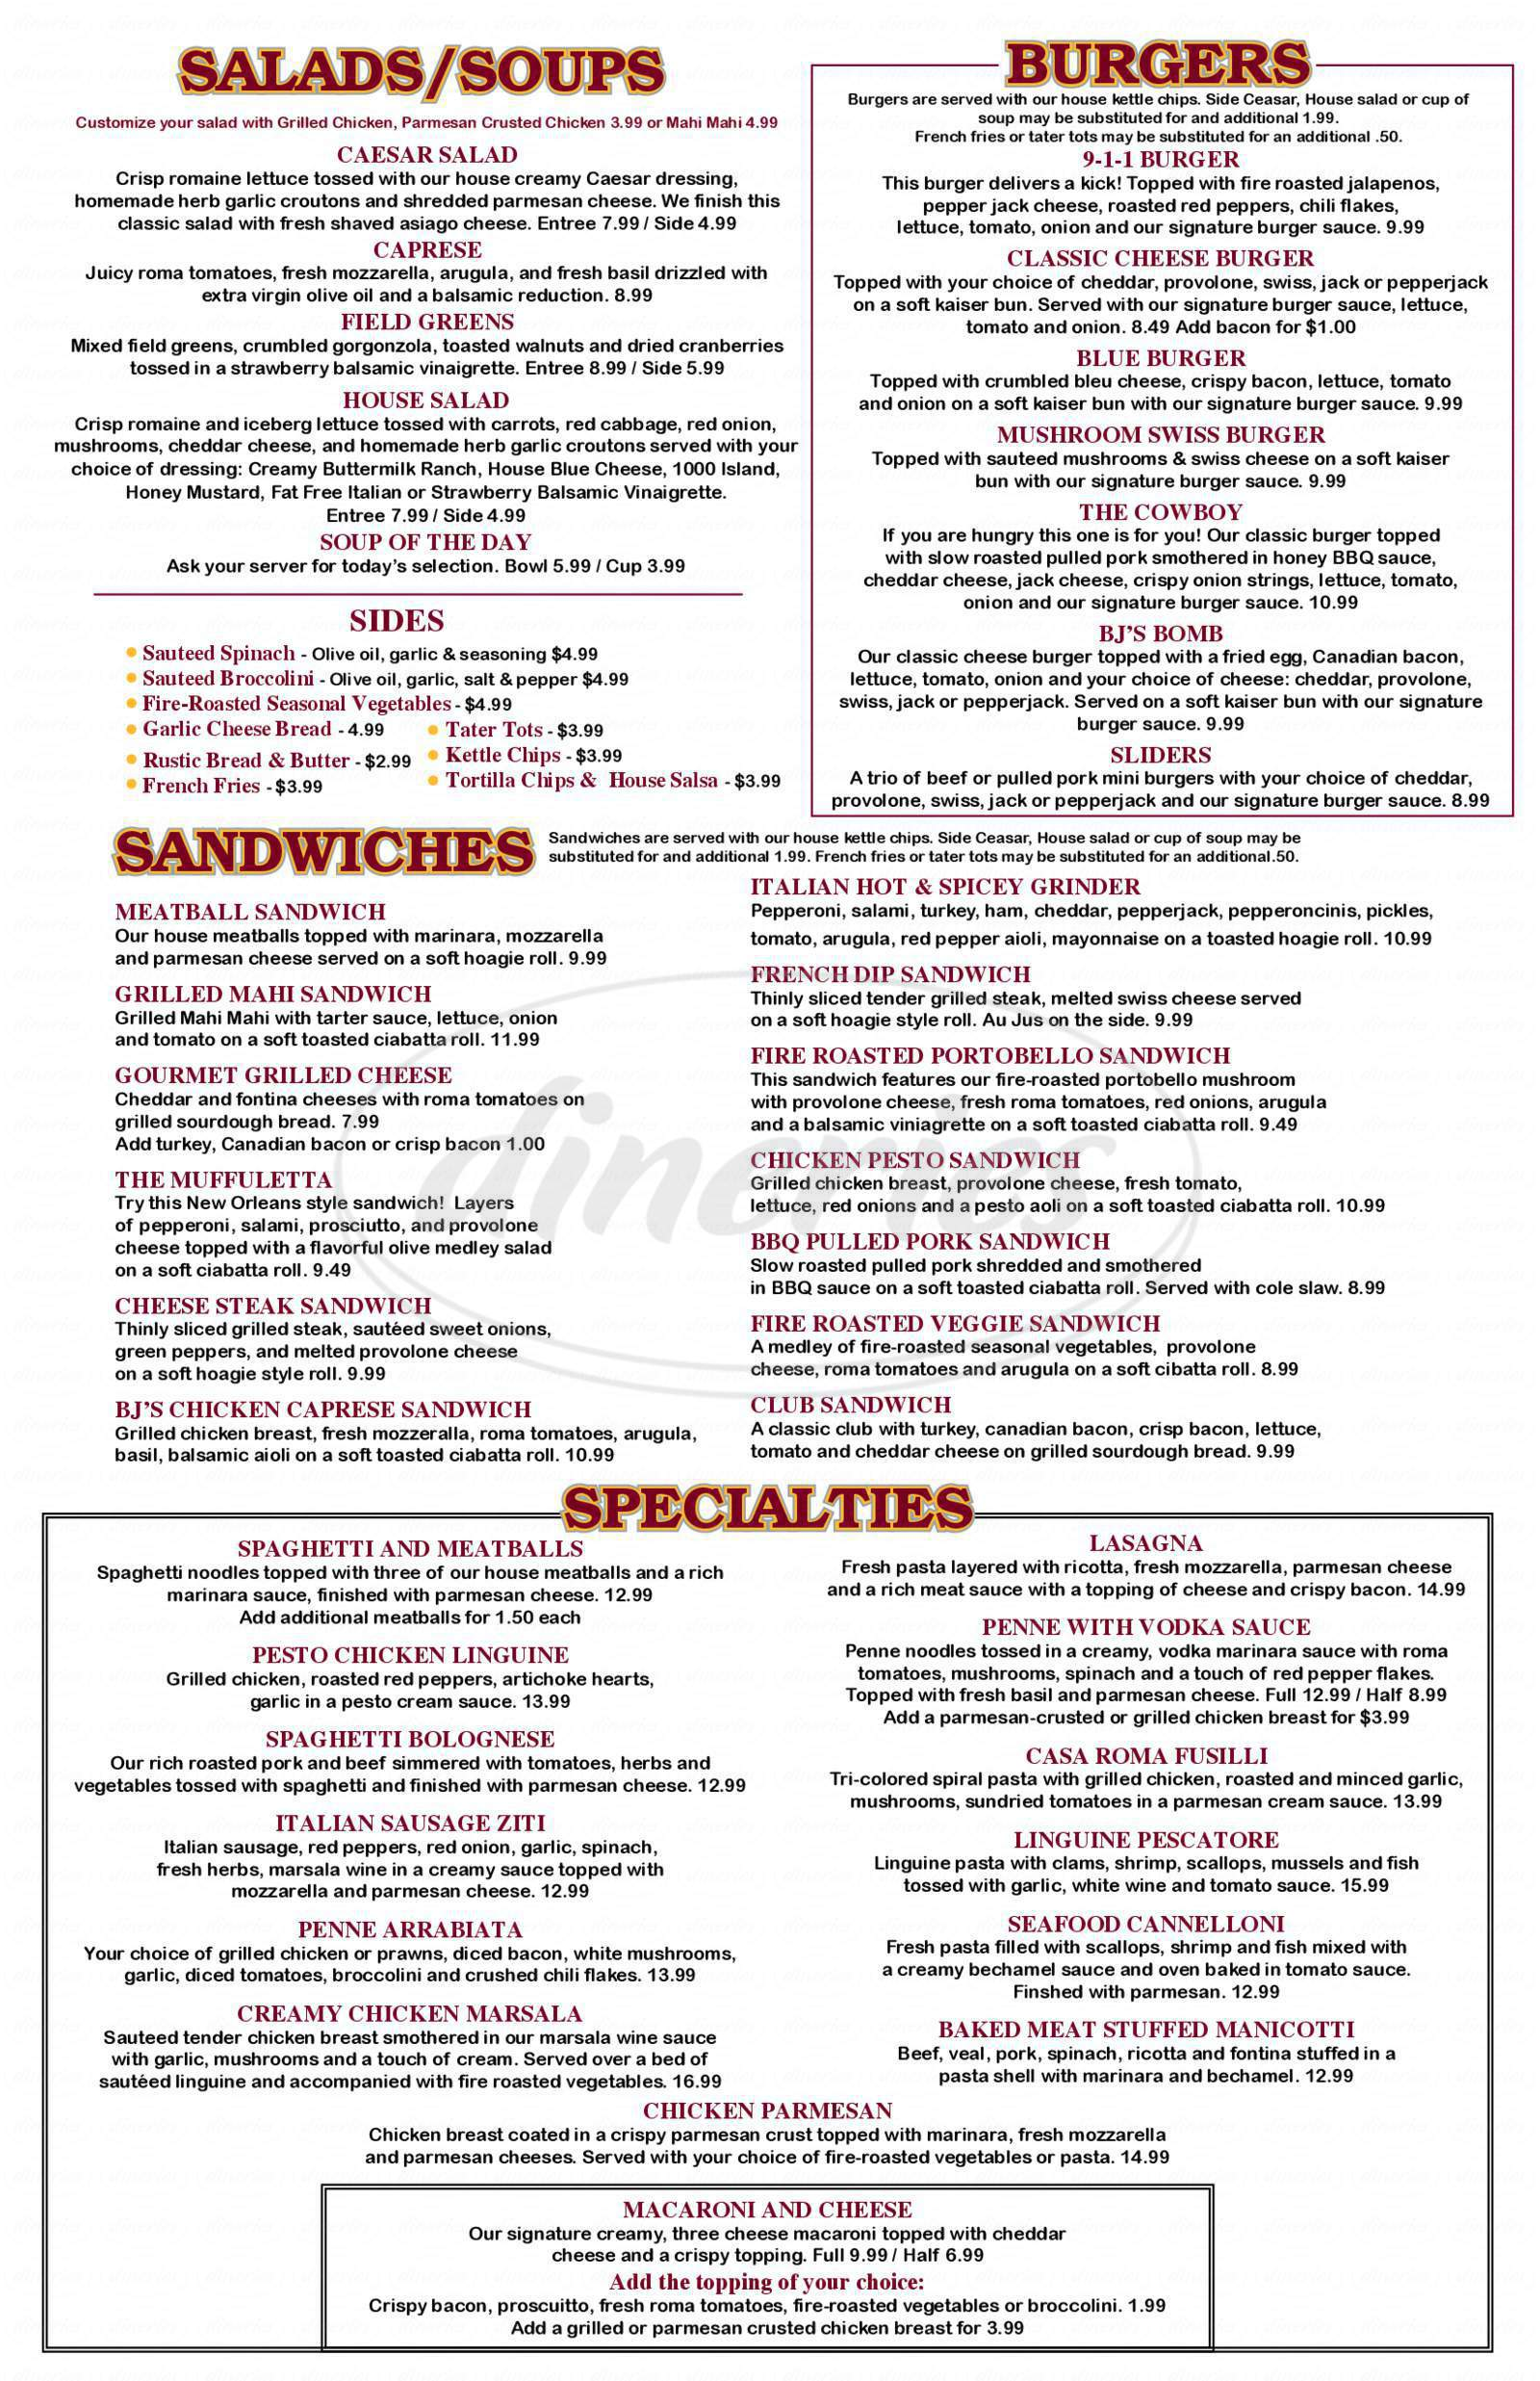 menu for B.J. Willy's Woodfired Pizza & Cafe